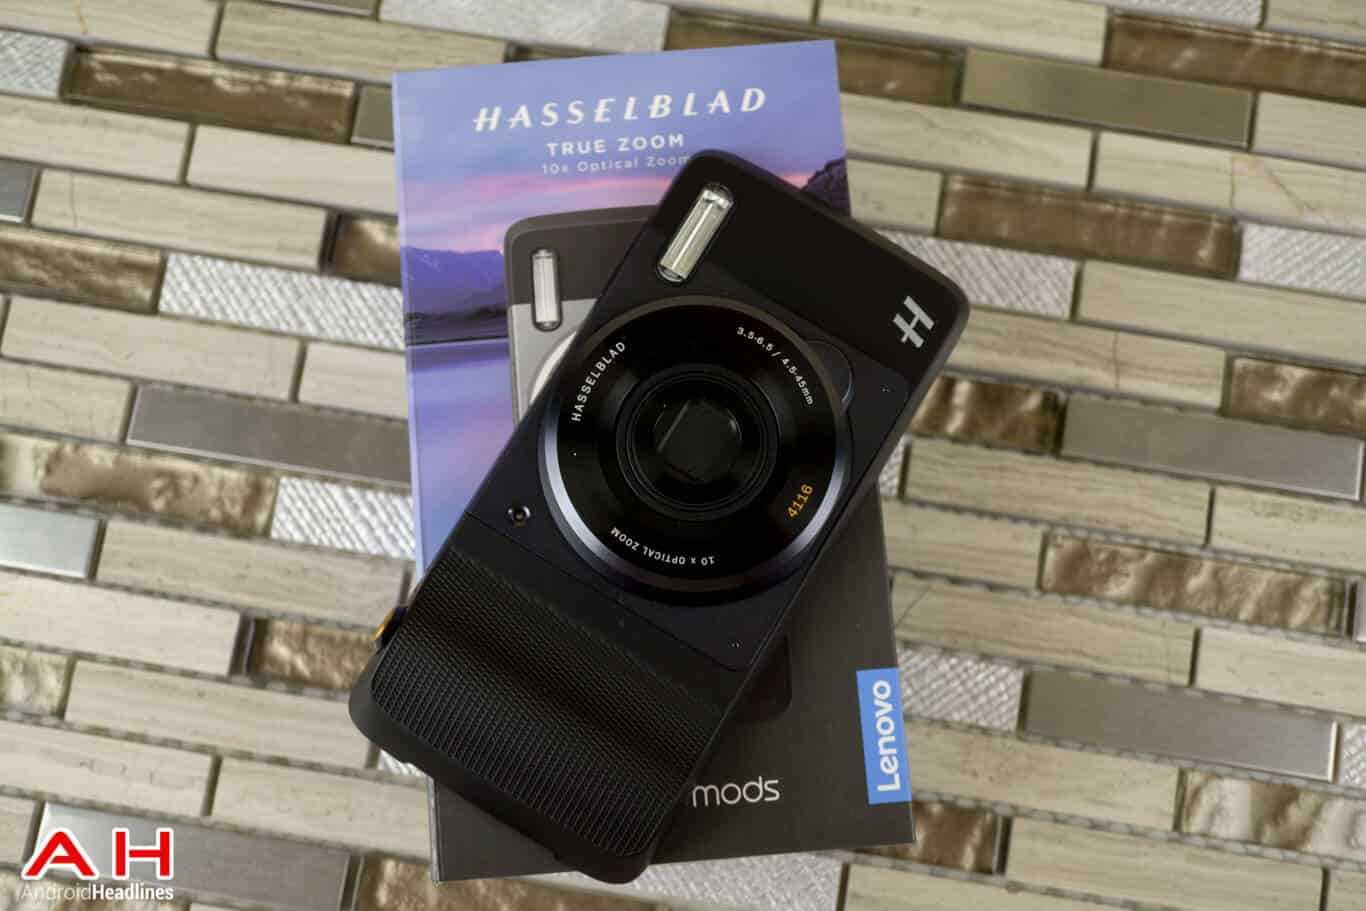 Hasselblad Camera Moto Mod Review AM AH 6